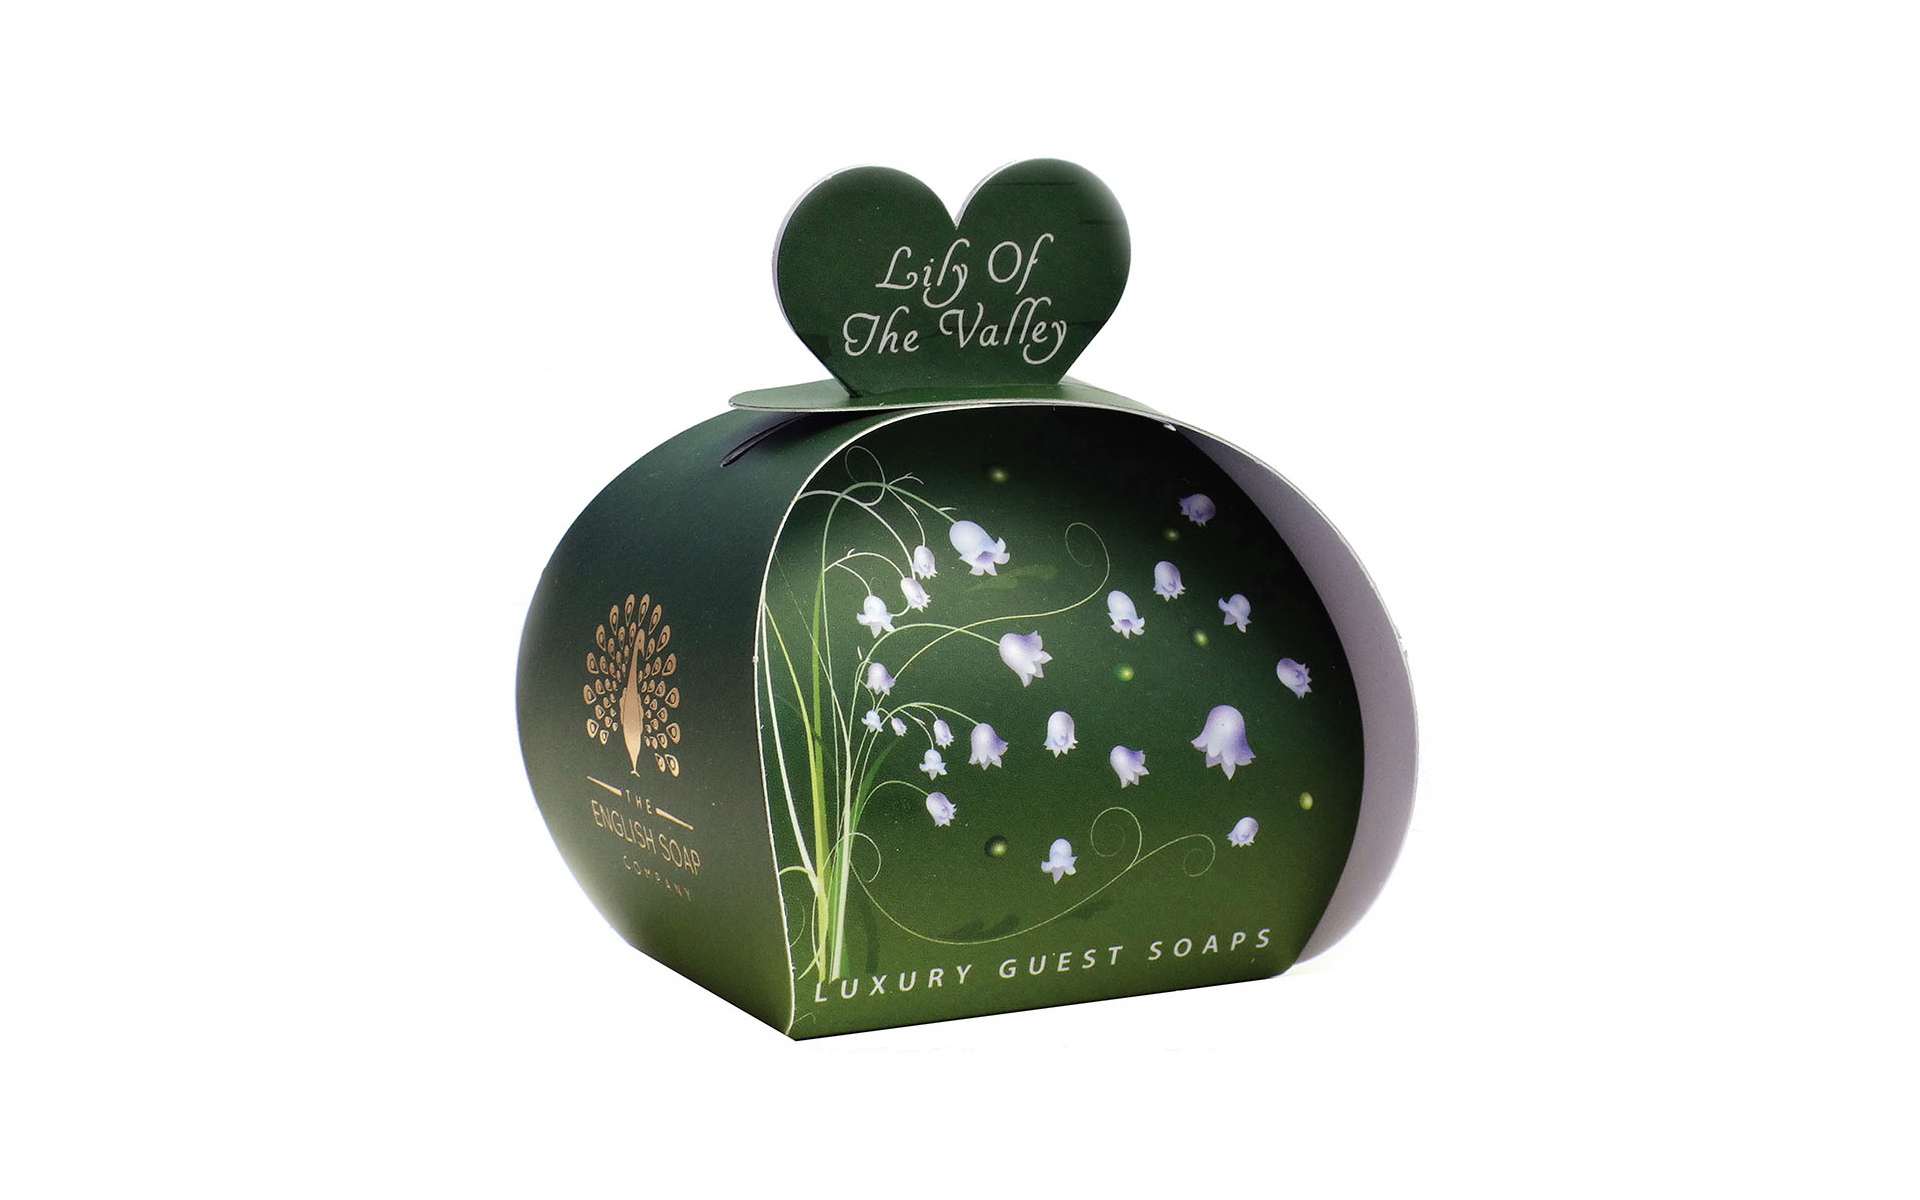 Sabonete 3x20g Lily of the Valley